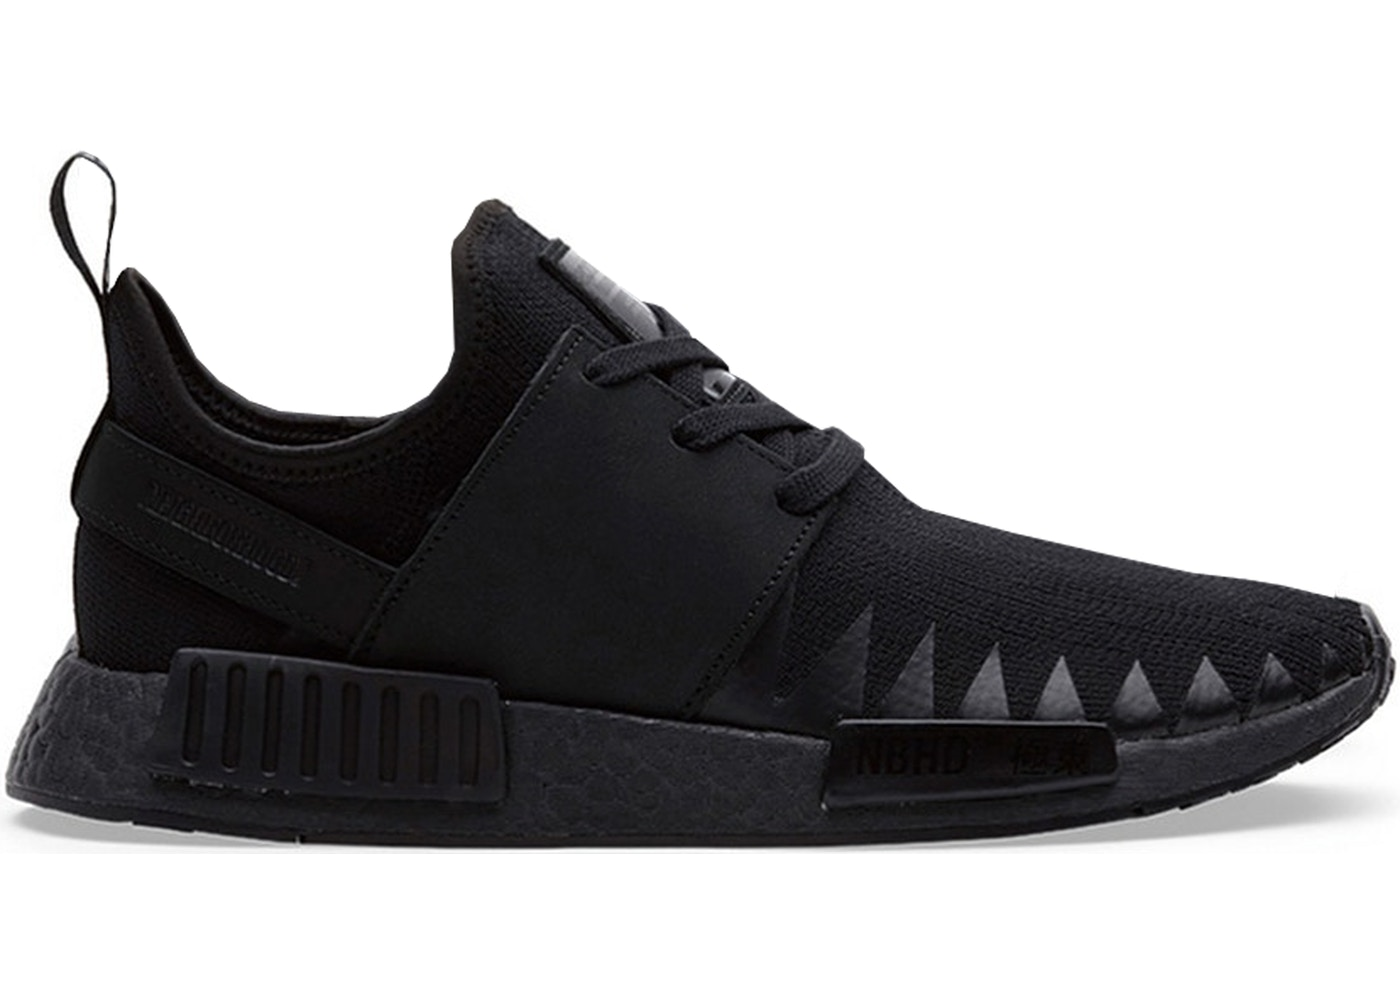 アディダス ADIDAS スニーカー 【 NMD R1 NEIGHBORHOOD TRIPLE BLACK CORE 】 メンズ